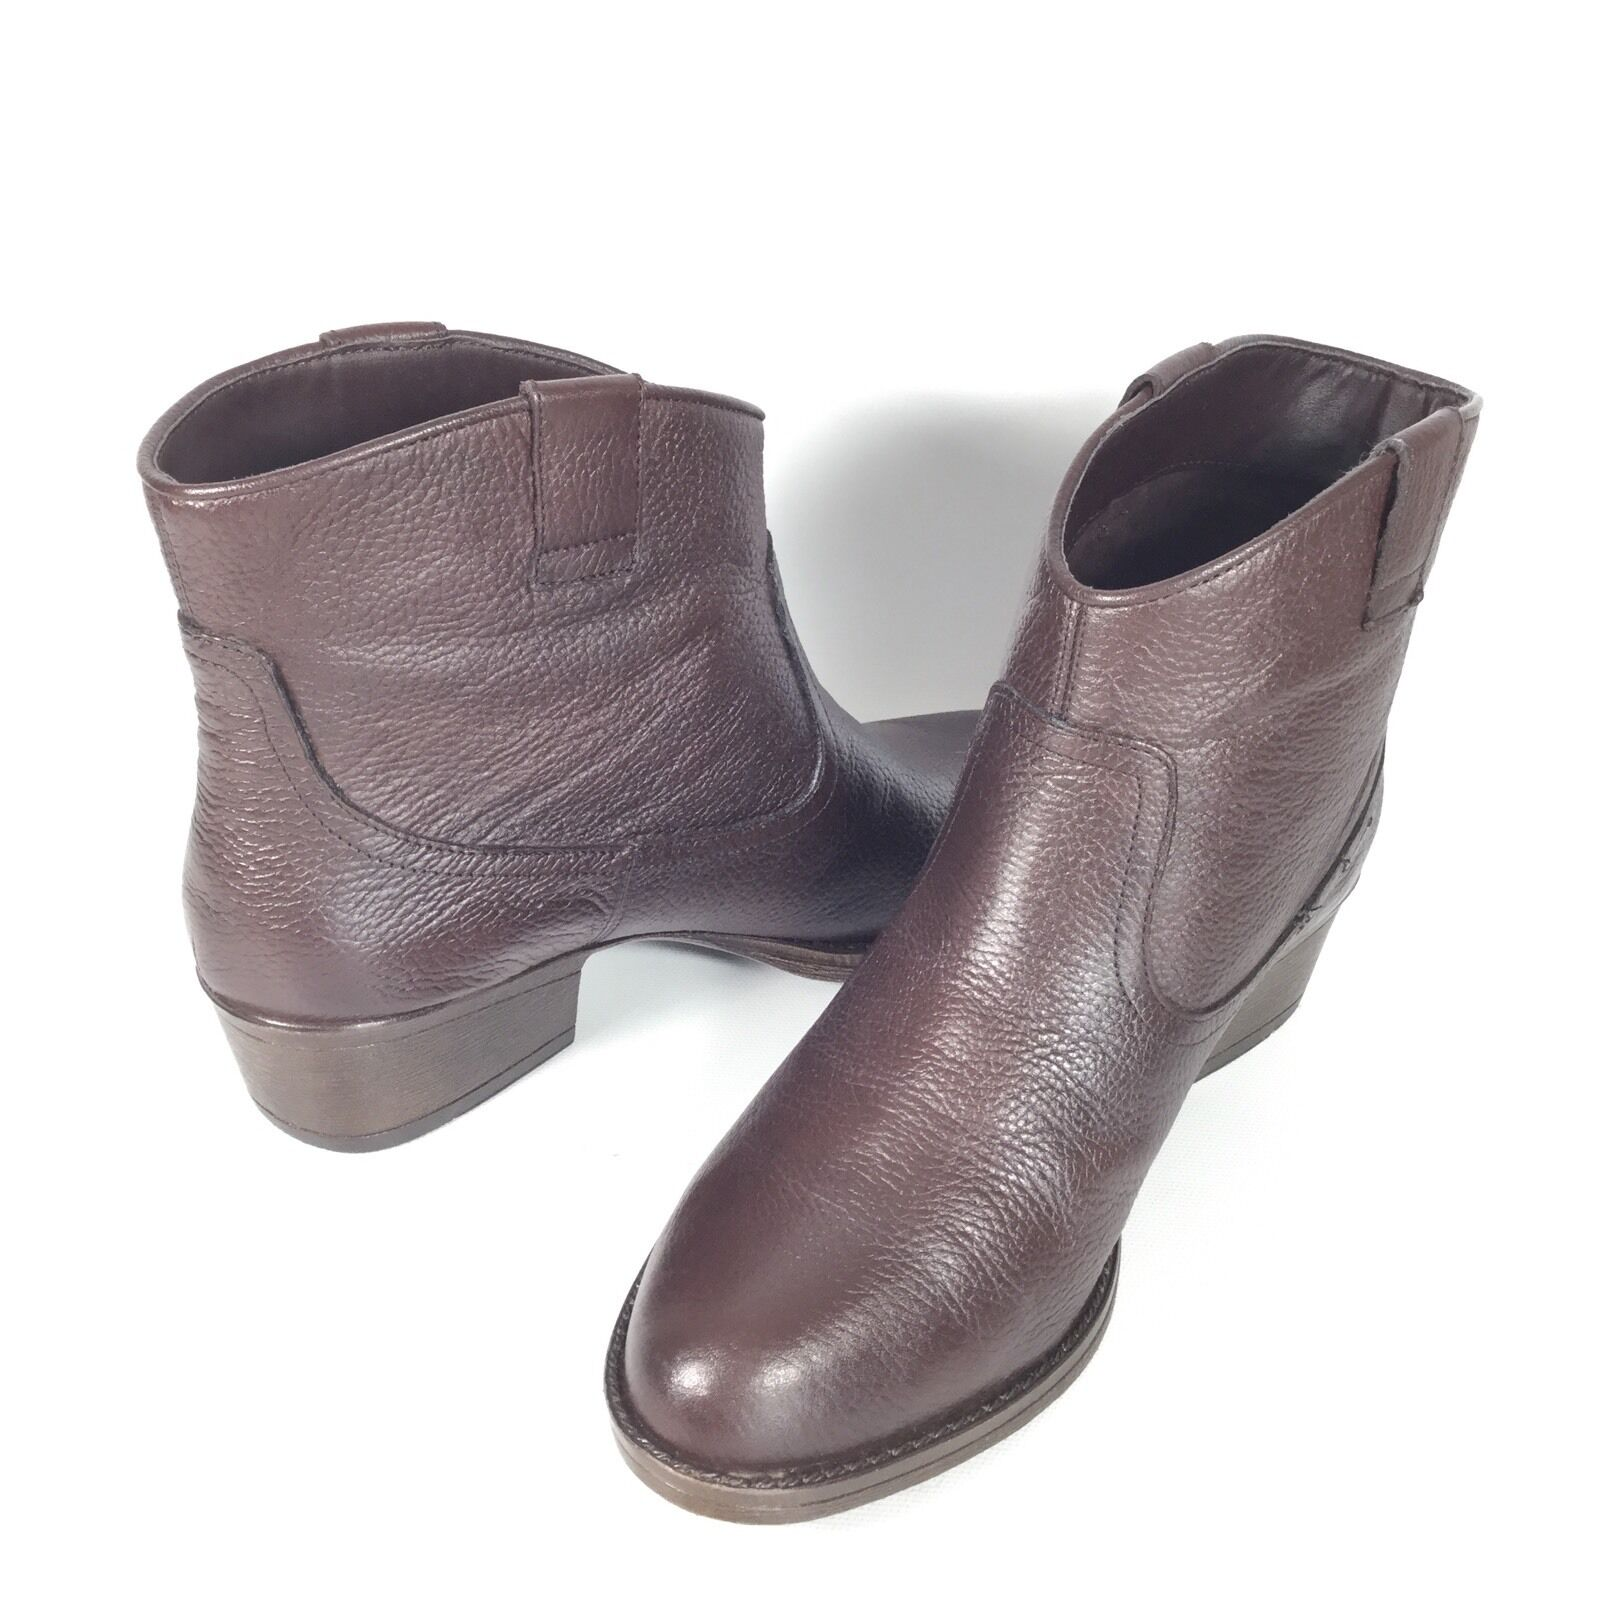 Kenneth Cole Reaction Hot Step Women's Women's Women's Size 8.5 Leather Ankle Boots. ea55bf